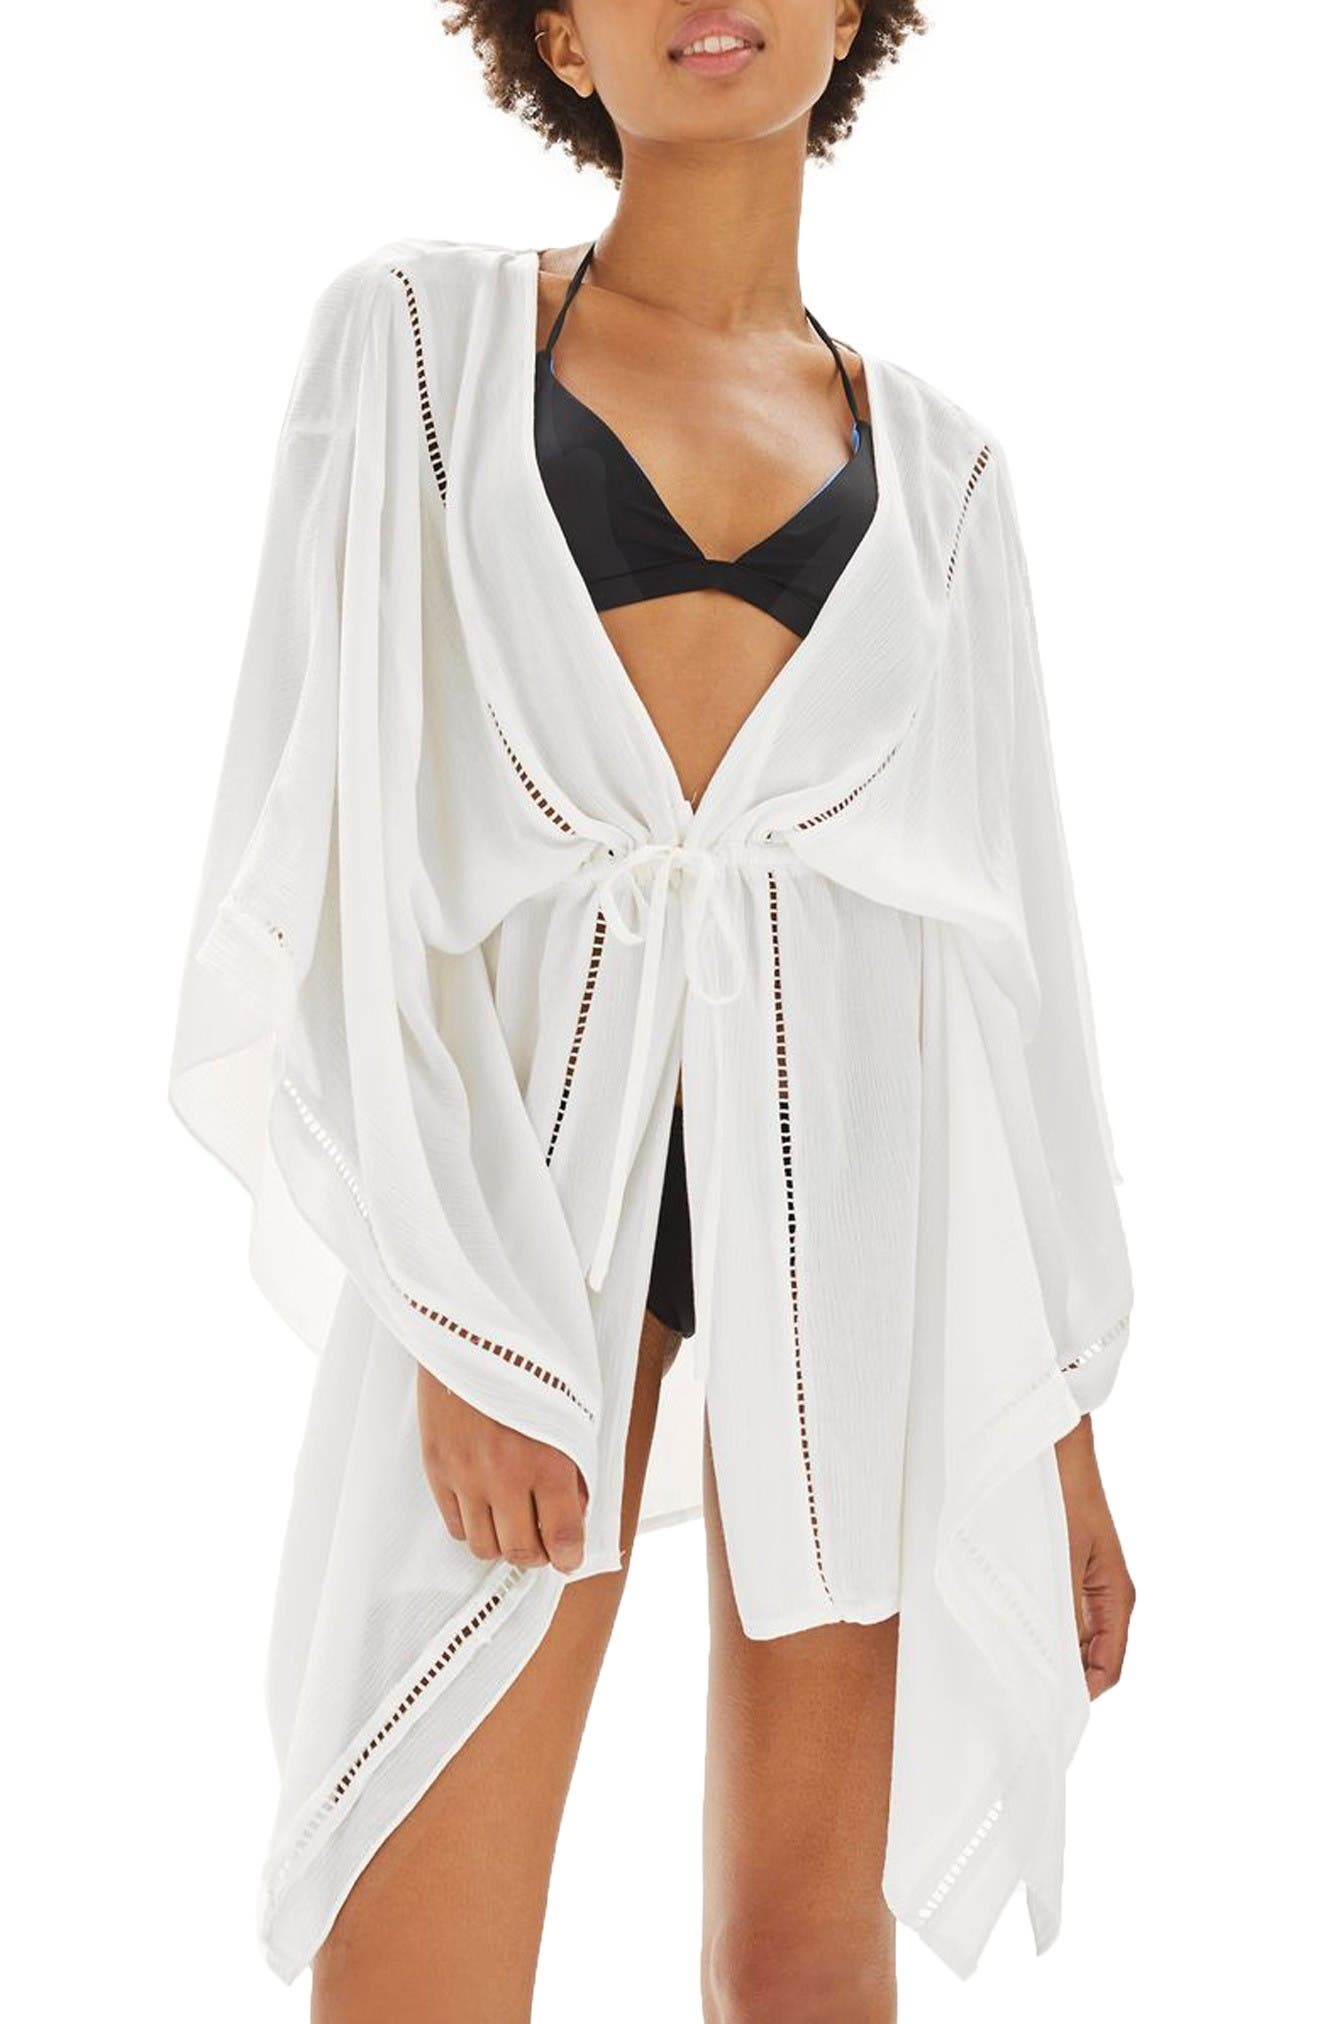 Alternate Image 1 Selected - Topshop Ladder Stitch Cover-Up Caftan